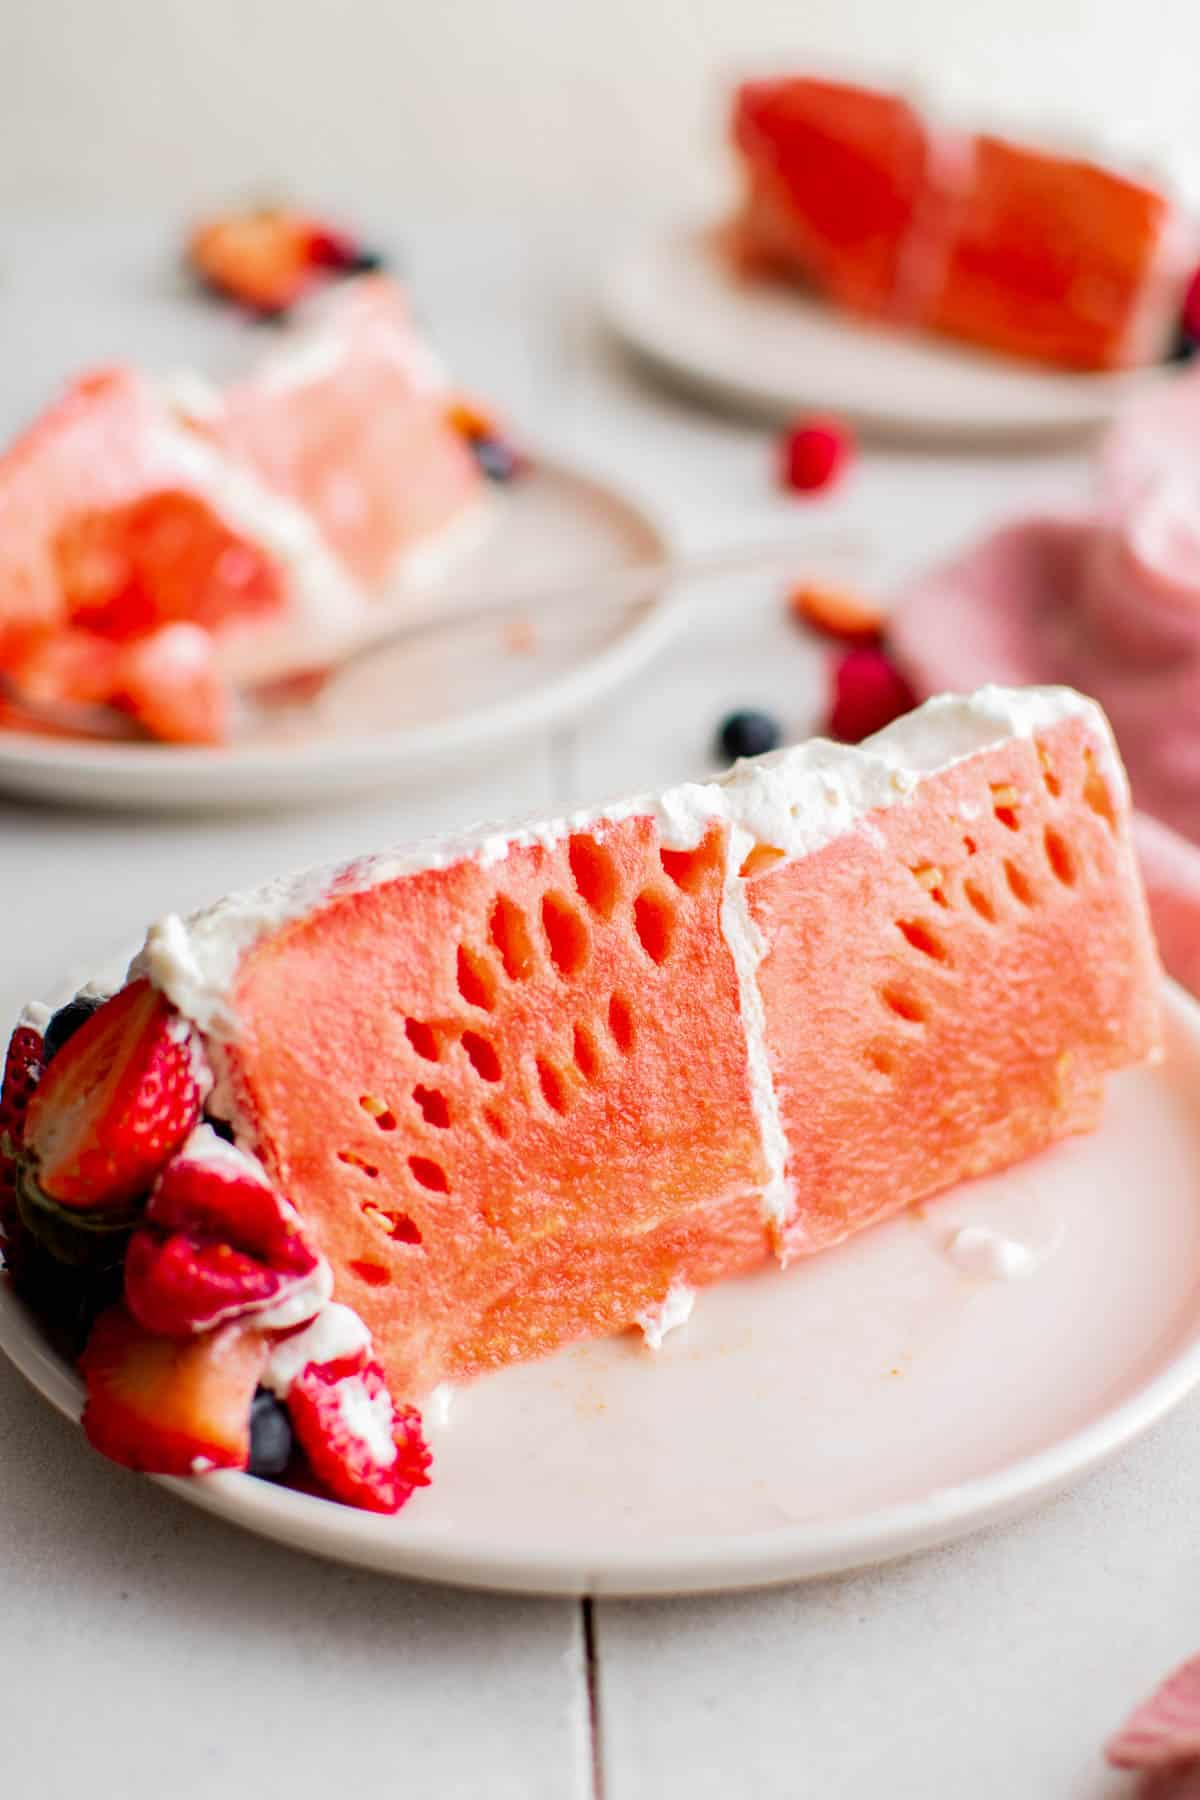 one slice of watermelon cake on a plate